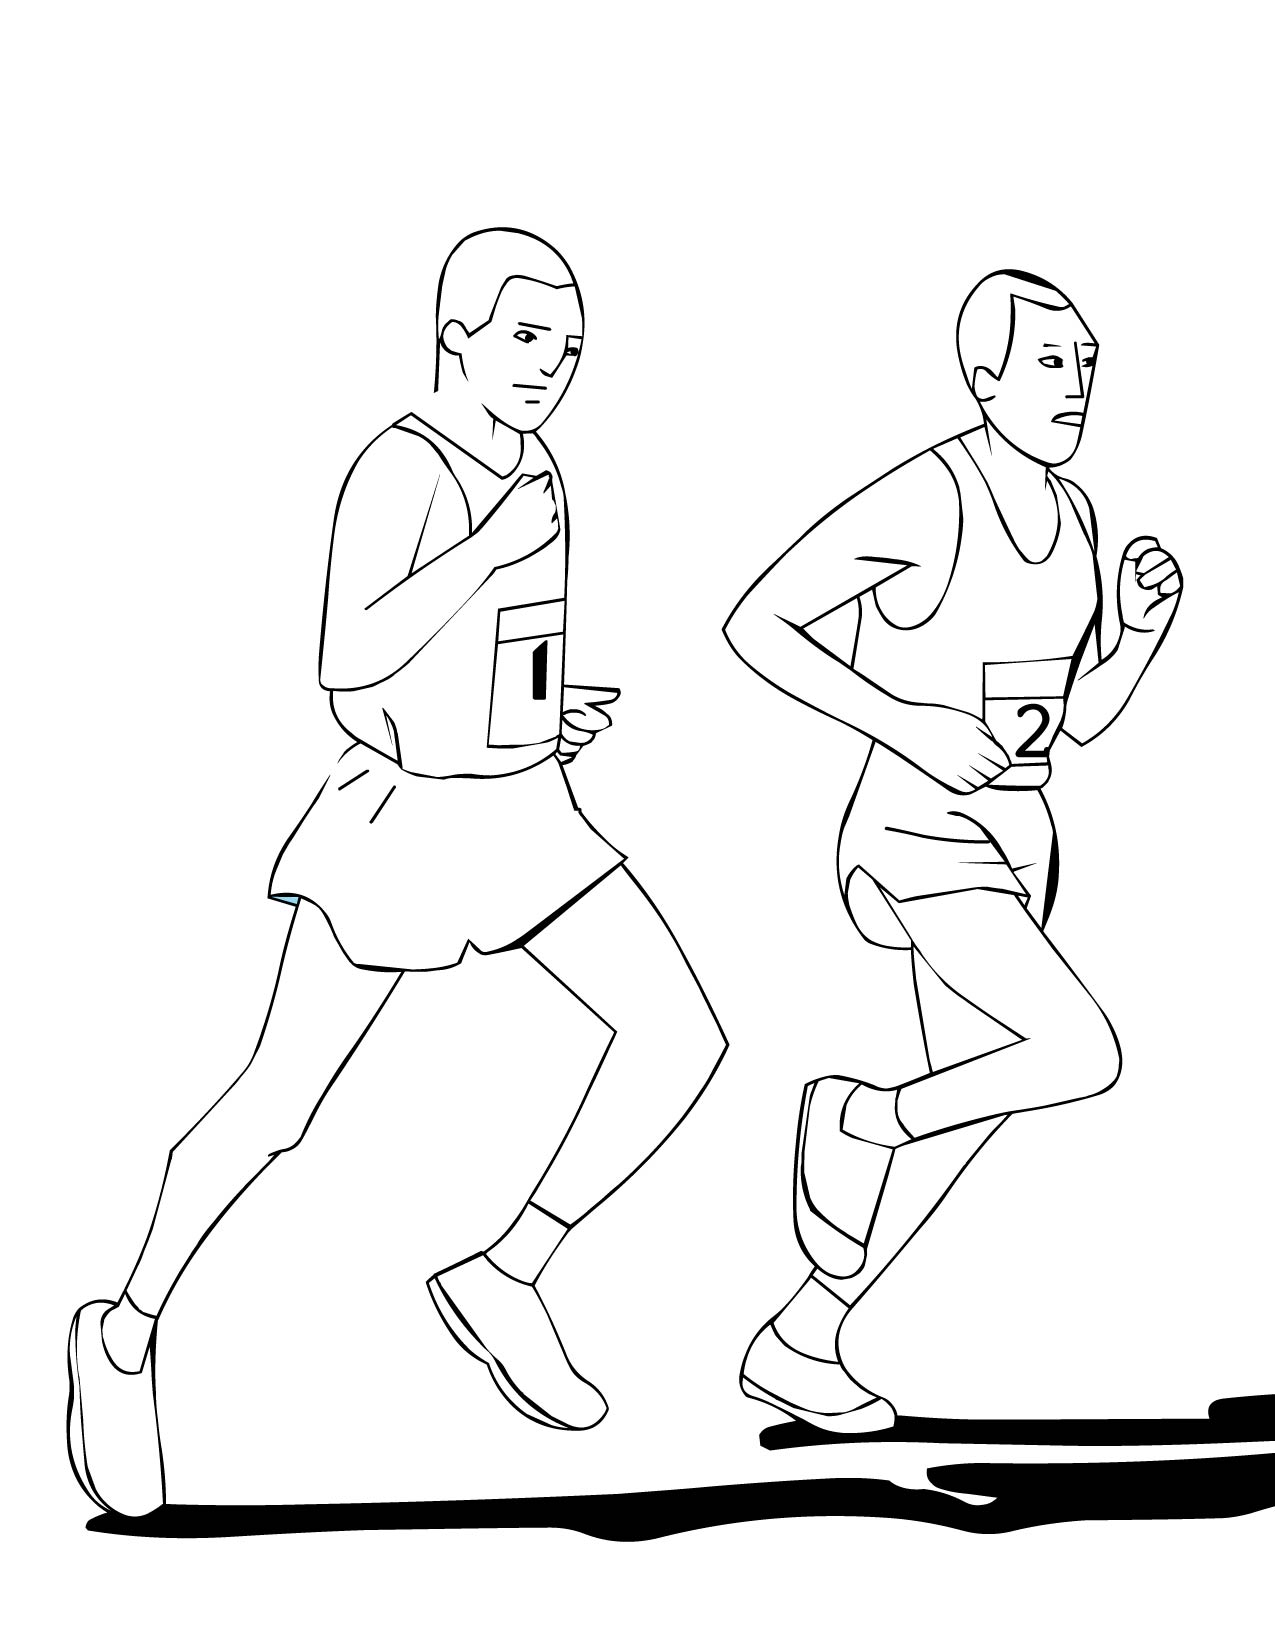 running a race coloring pages - photo#6